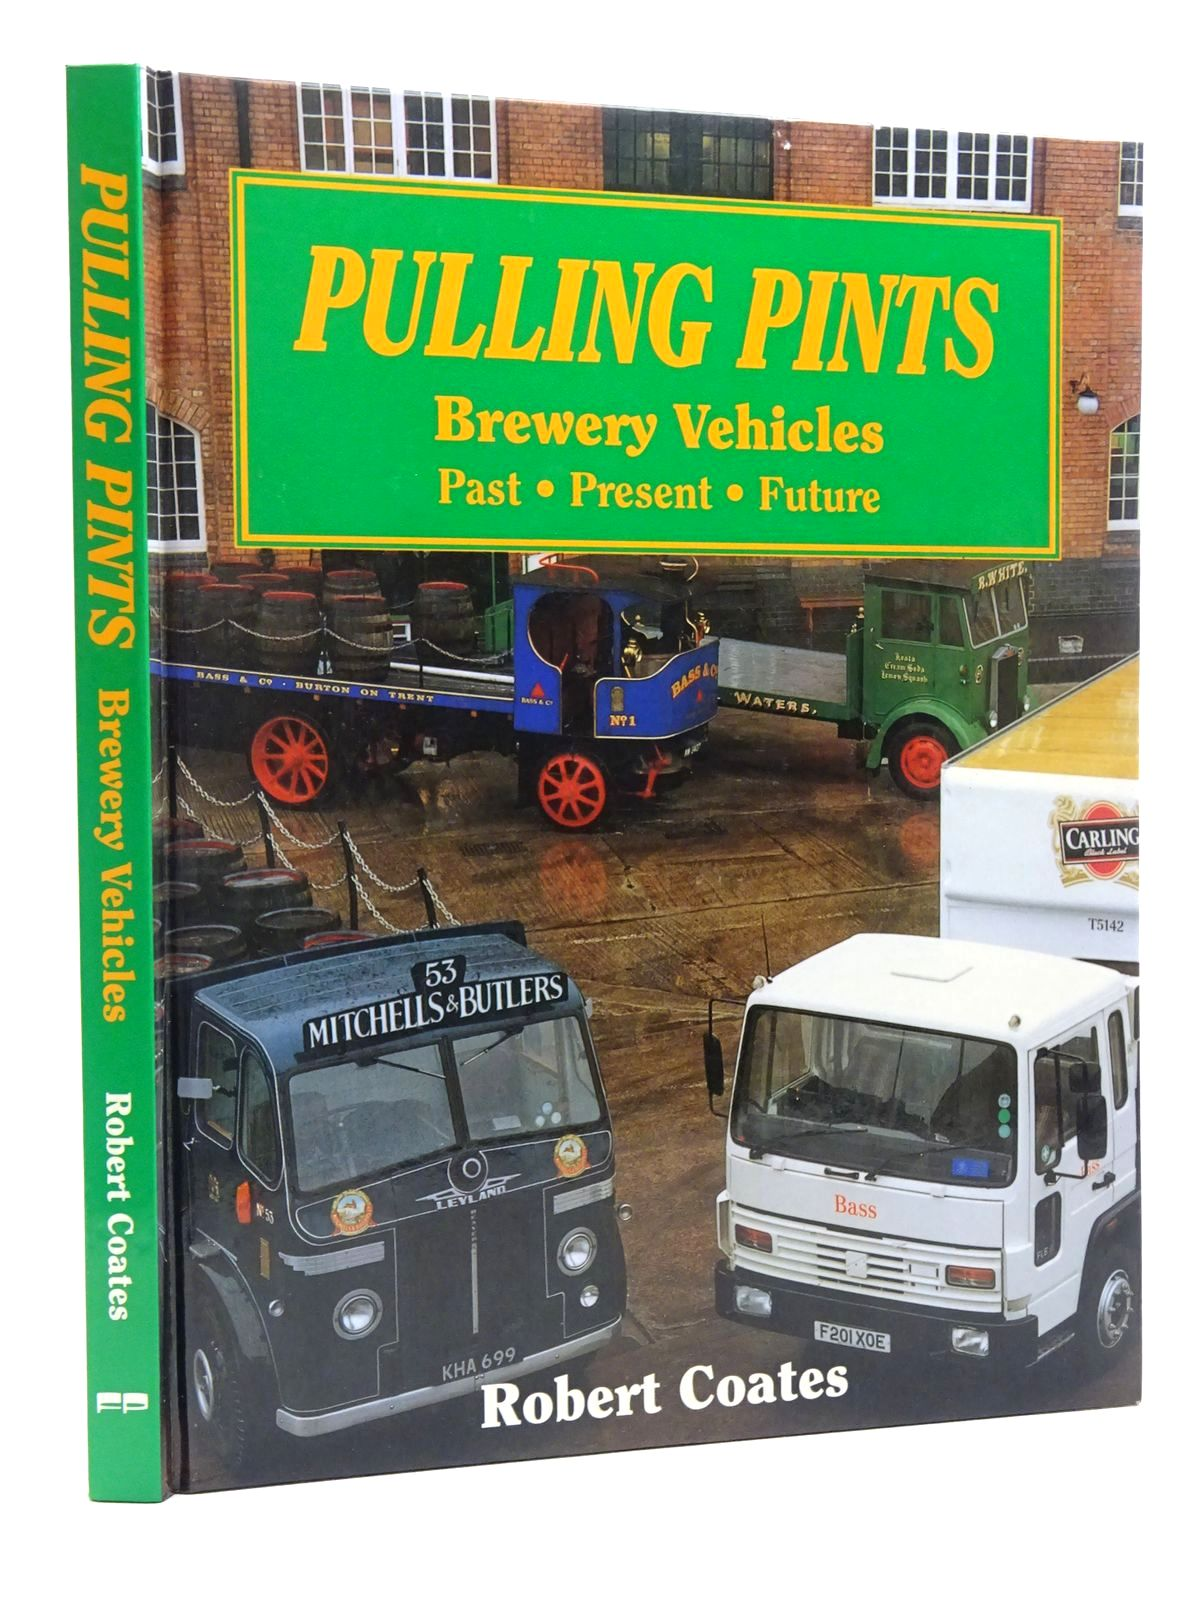 Photo of PULLING PINTS BREWERY VEHICLES PAST PRESENT FUTURE written by Coates, Robert published by The Fitzjames Press (STOCK CODE: 2124778)  for sale by Stella & Rose's Books